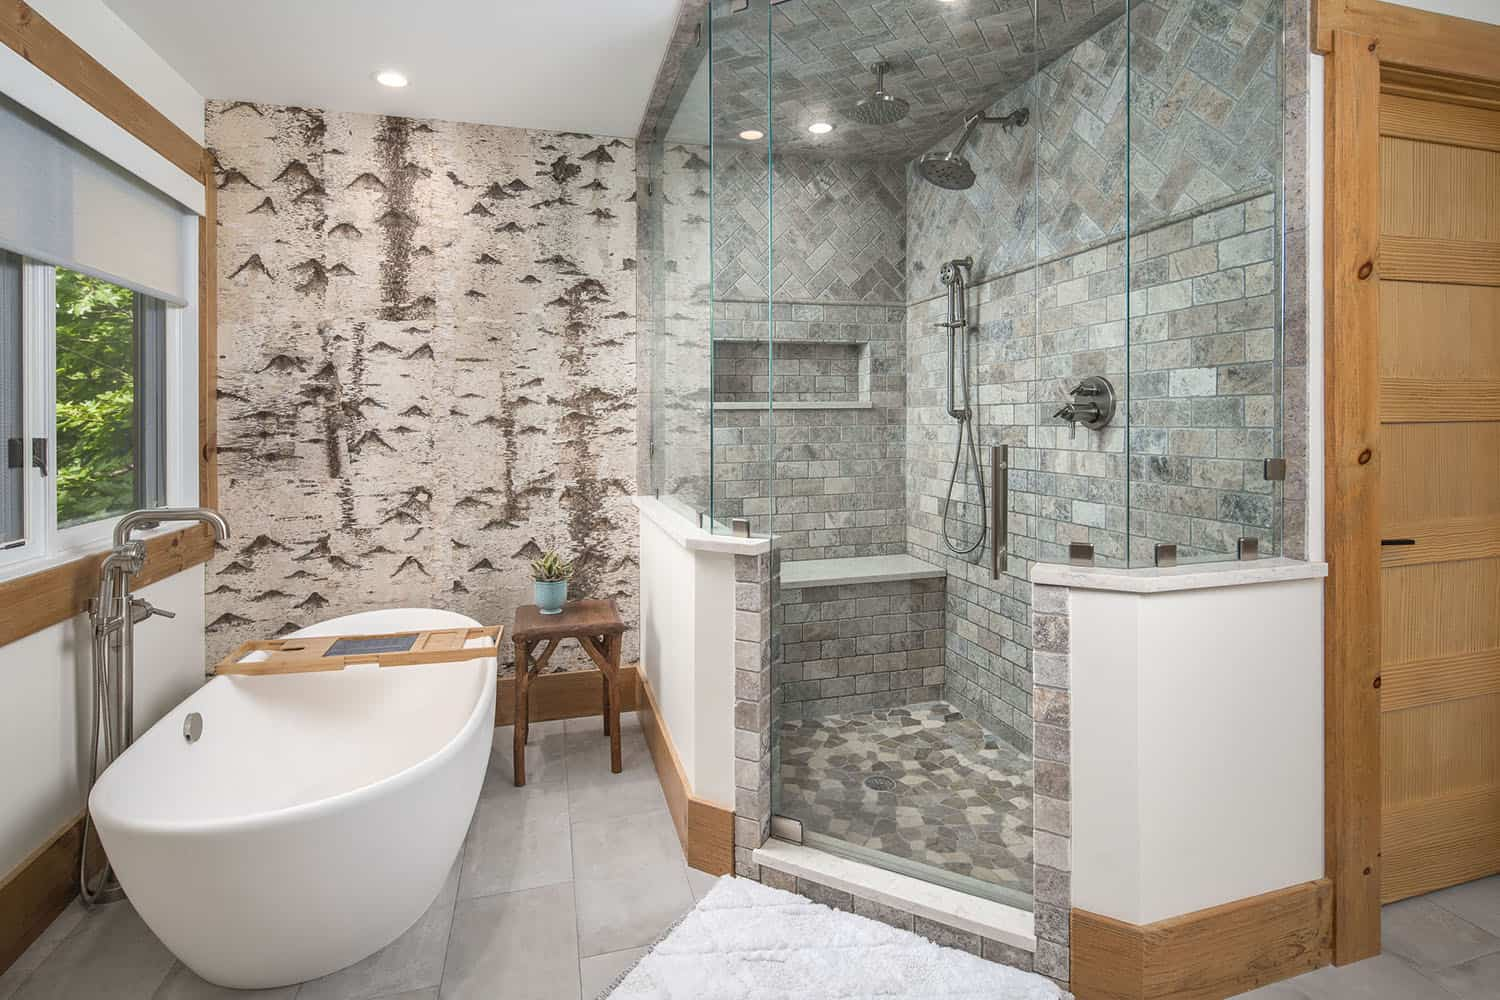 glass-shower-freestanding-tub-birch-accent-wall